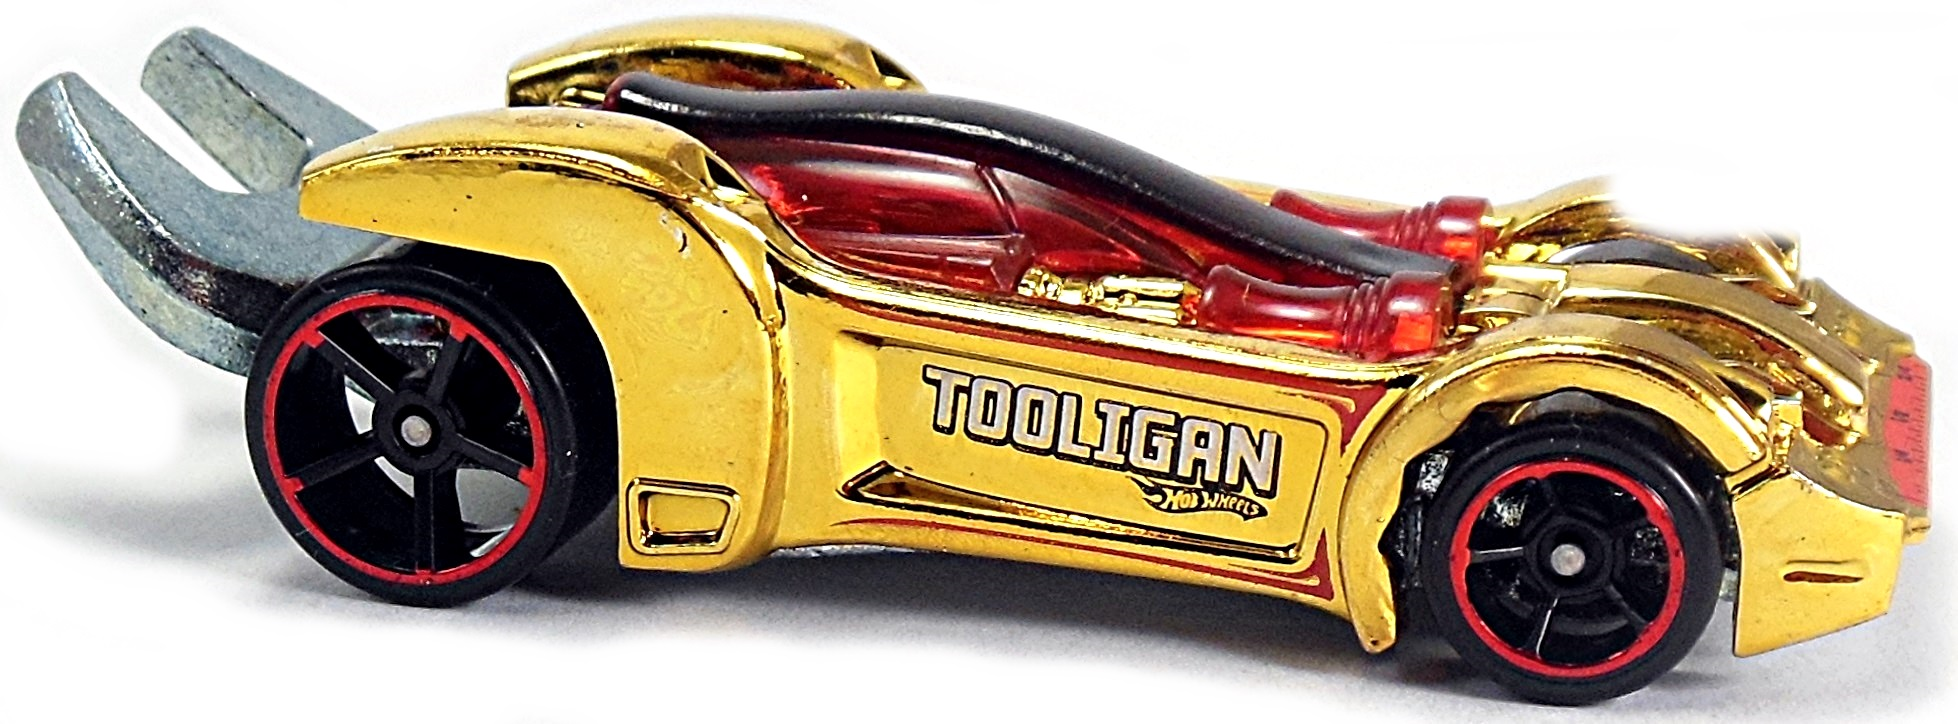 hot wheels langka treasure hunt Tooligan hot wheels newsletter